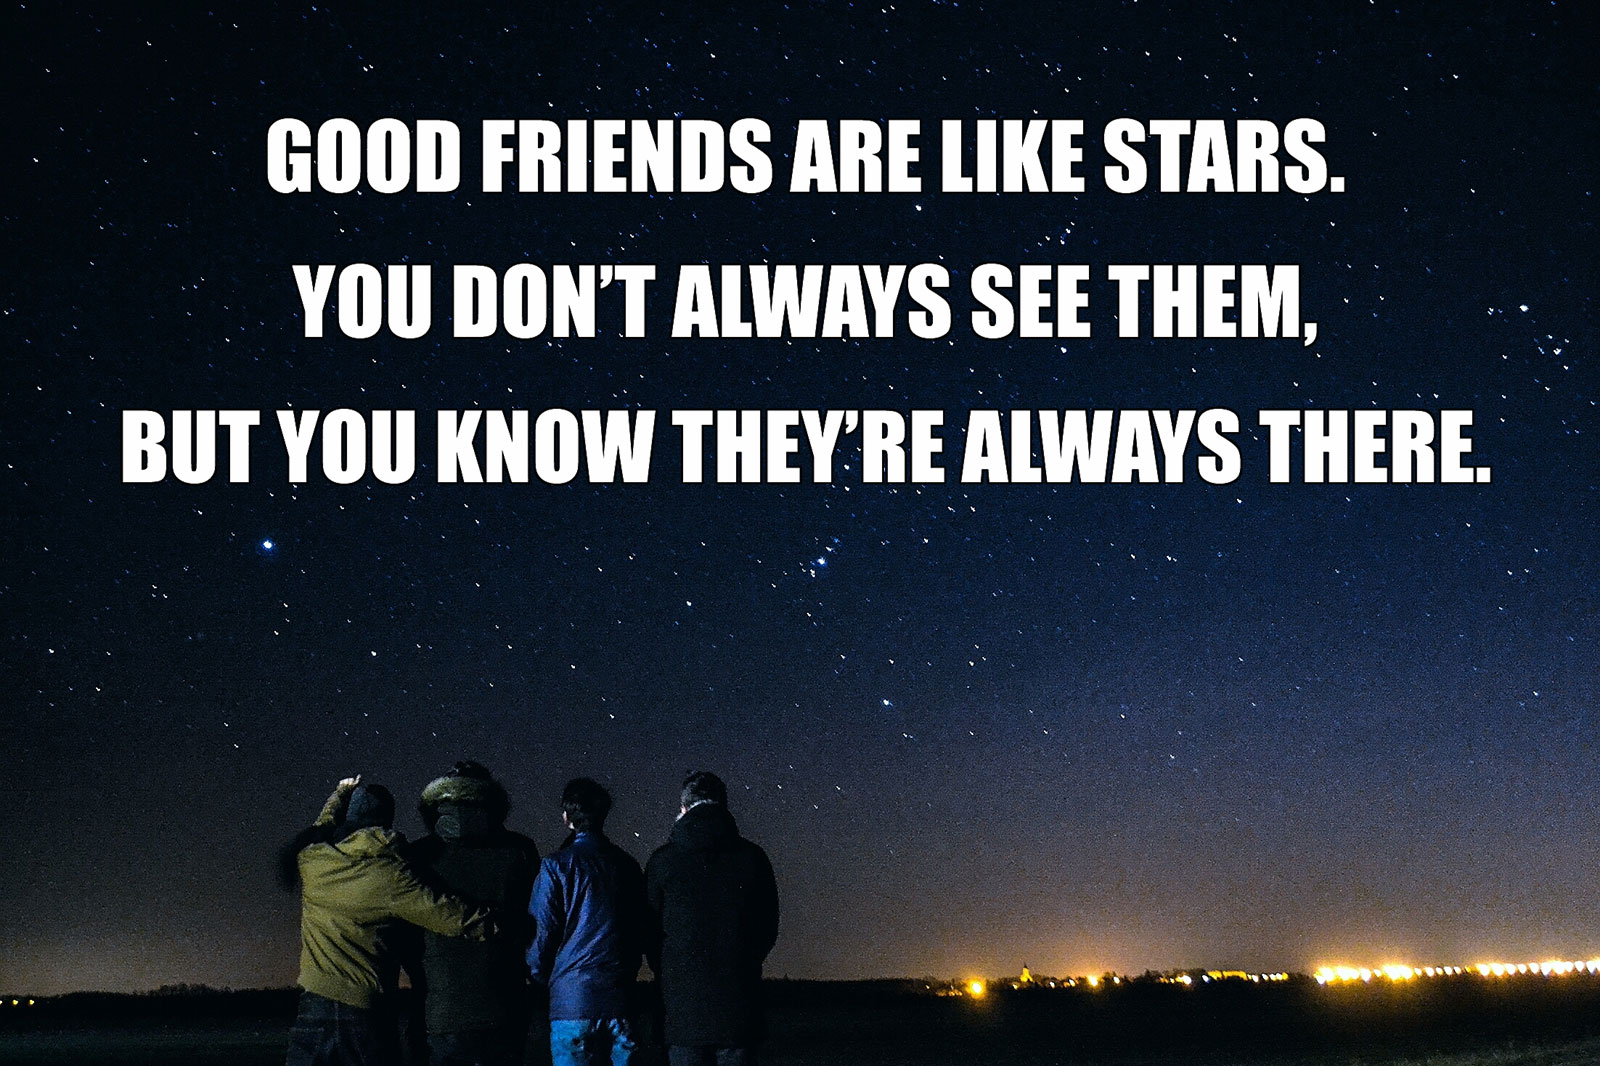 Good-Friends-Like-Stars.jpg